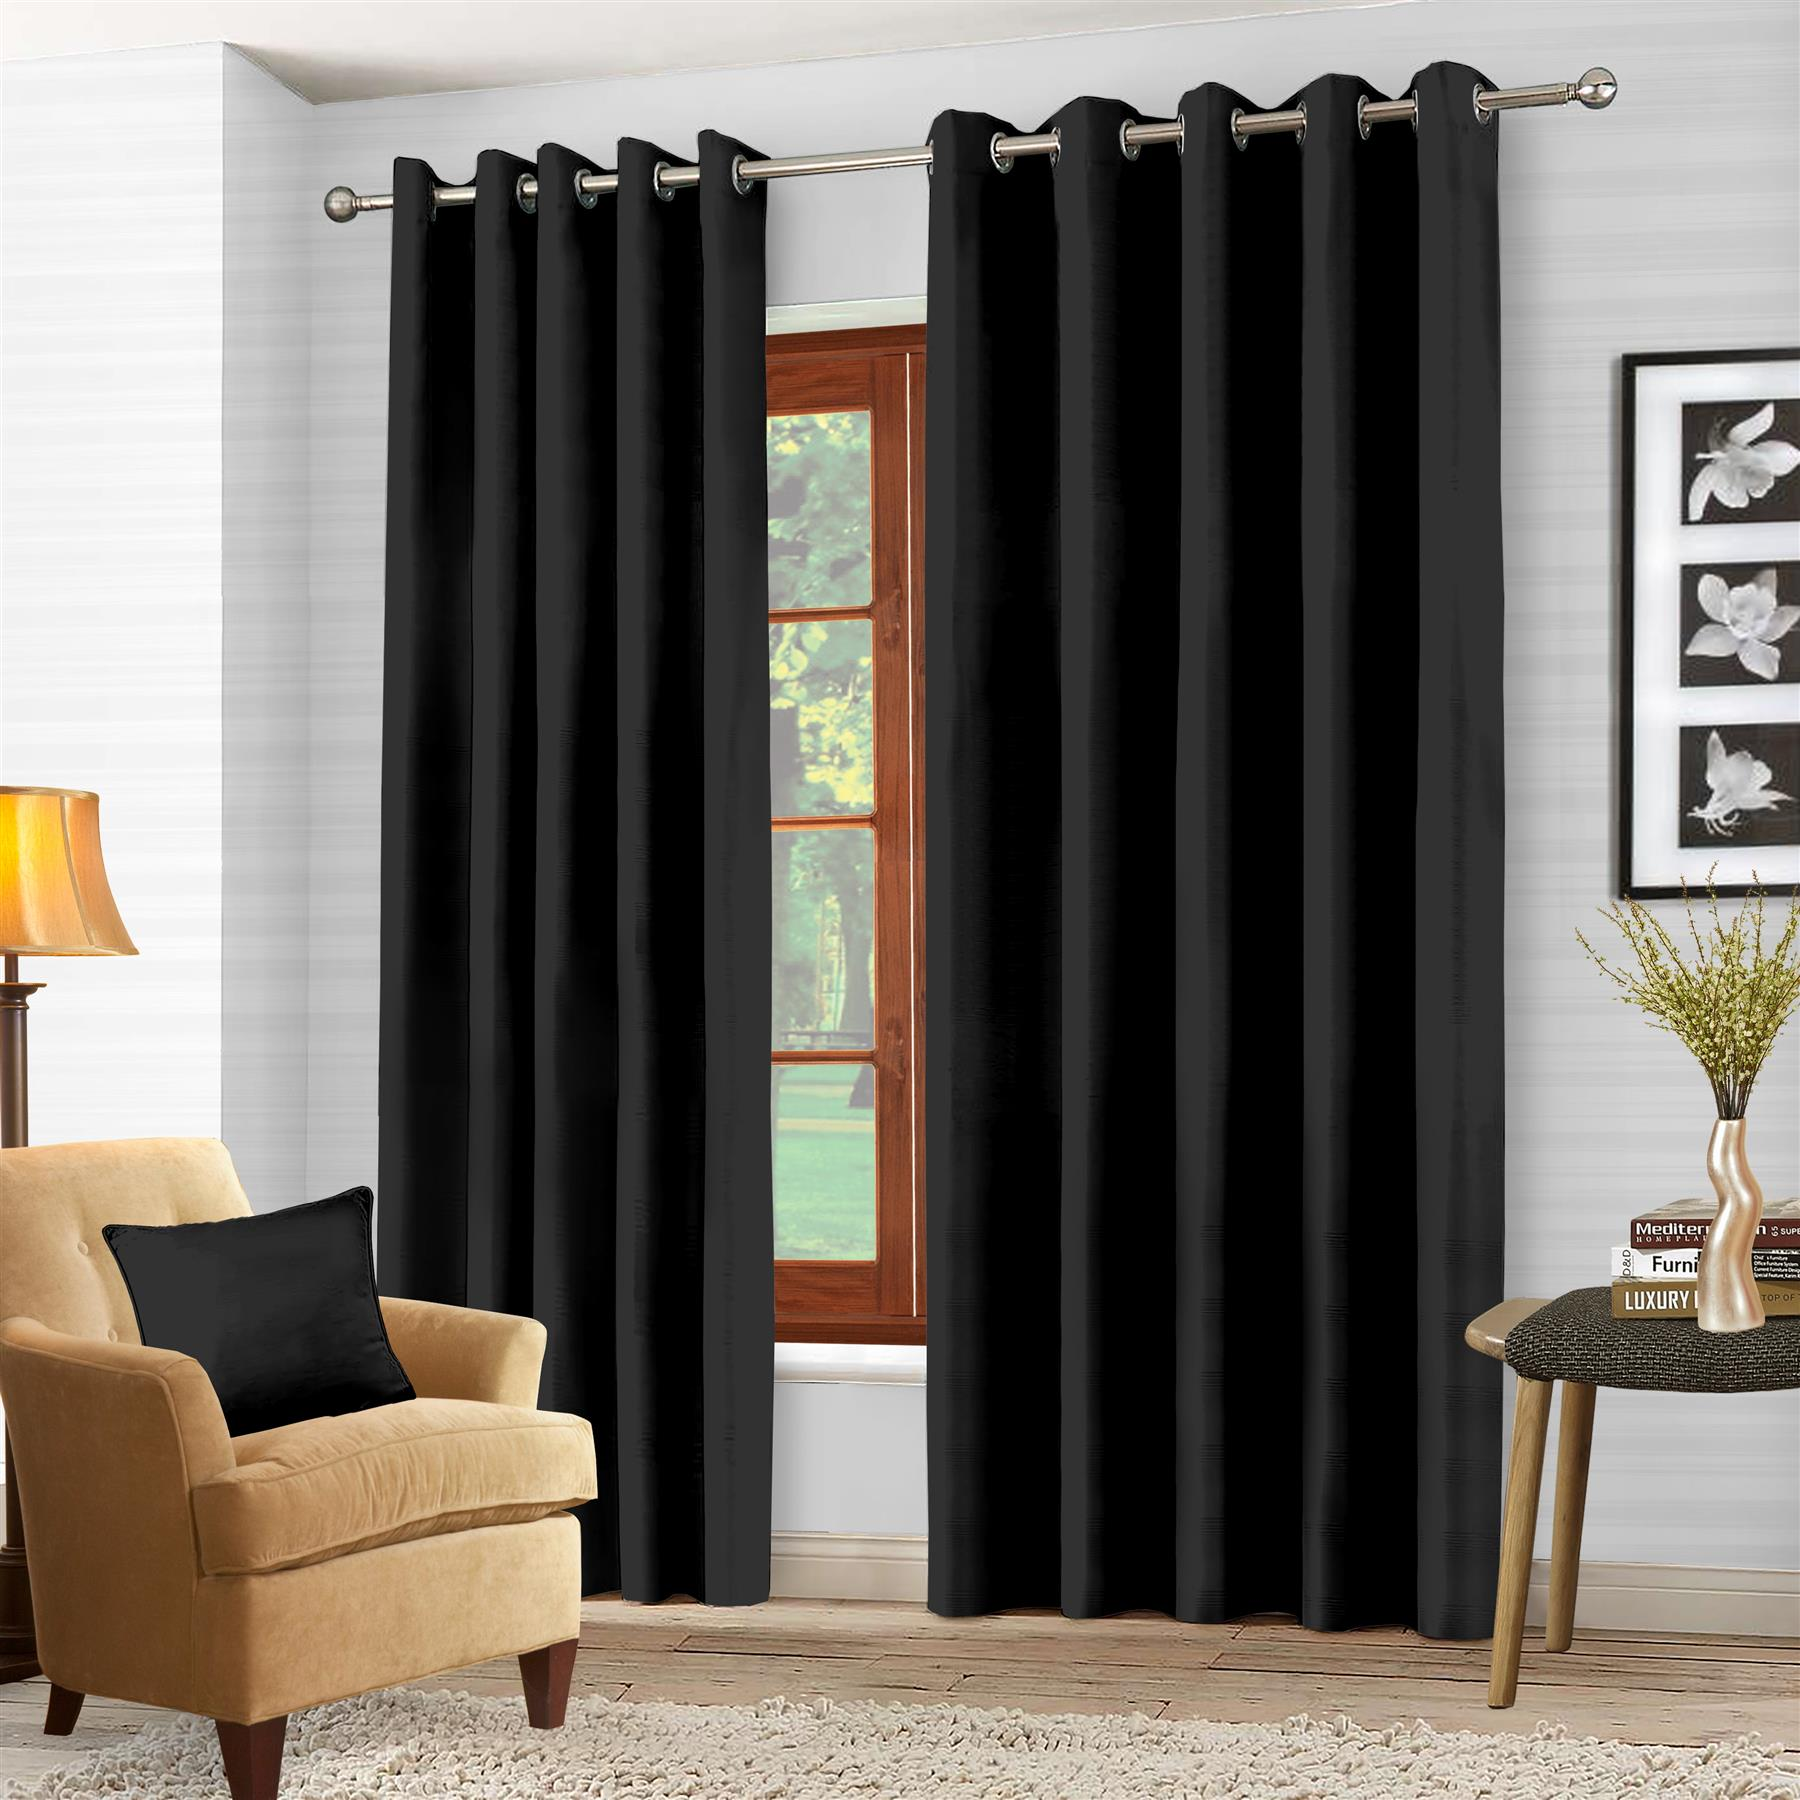 Luxury-Thermal-Blackout-Eyelet-Ring-Top-Curtains-Pair-with-tie-backs thumbnail 3